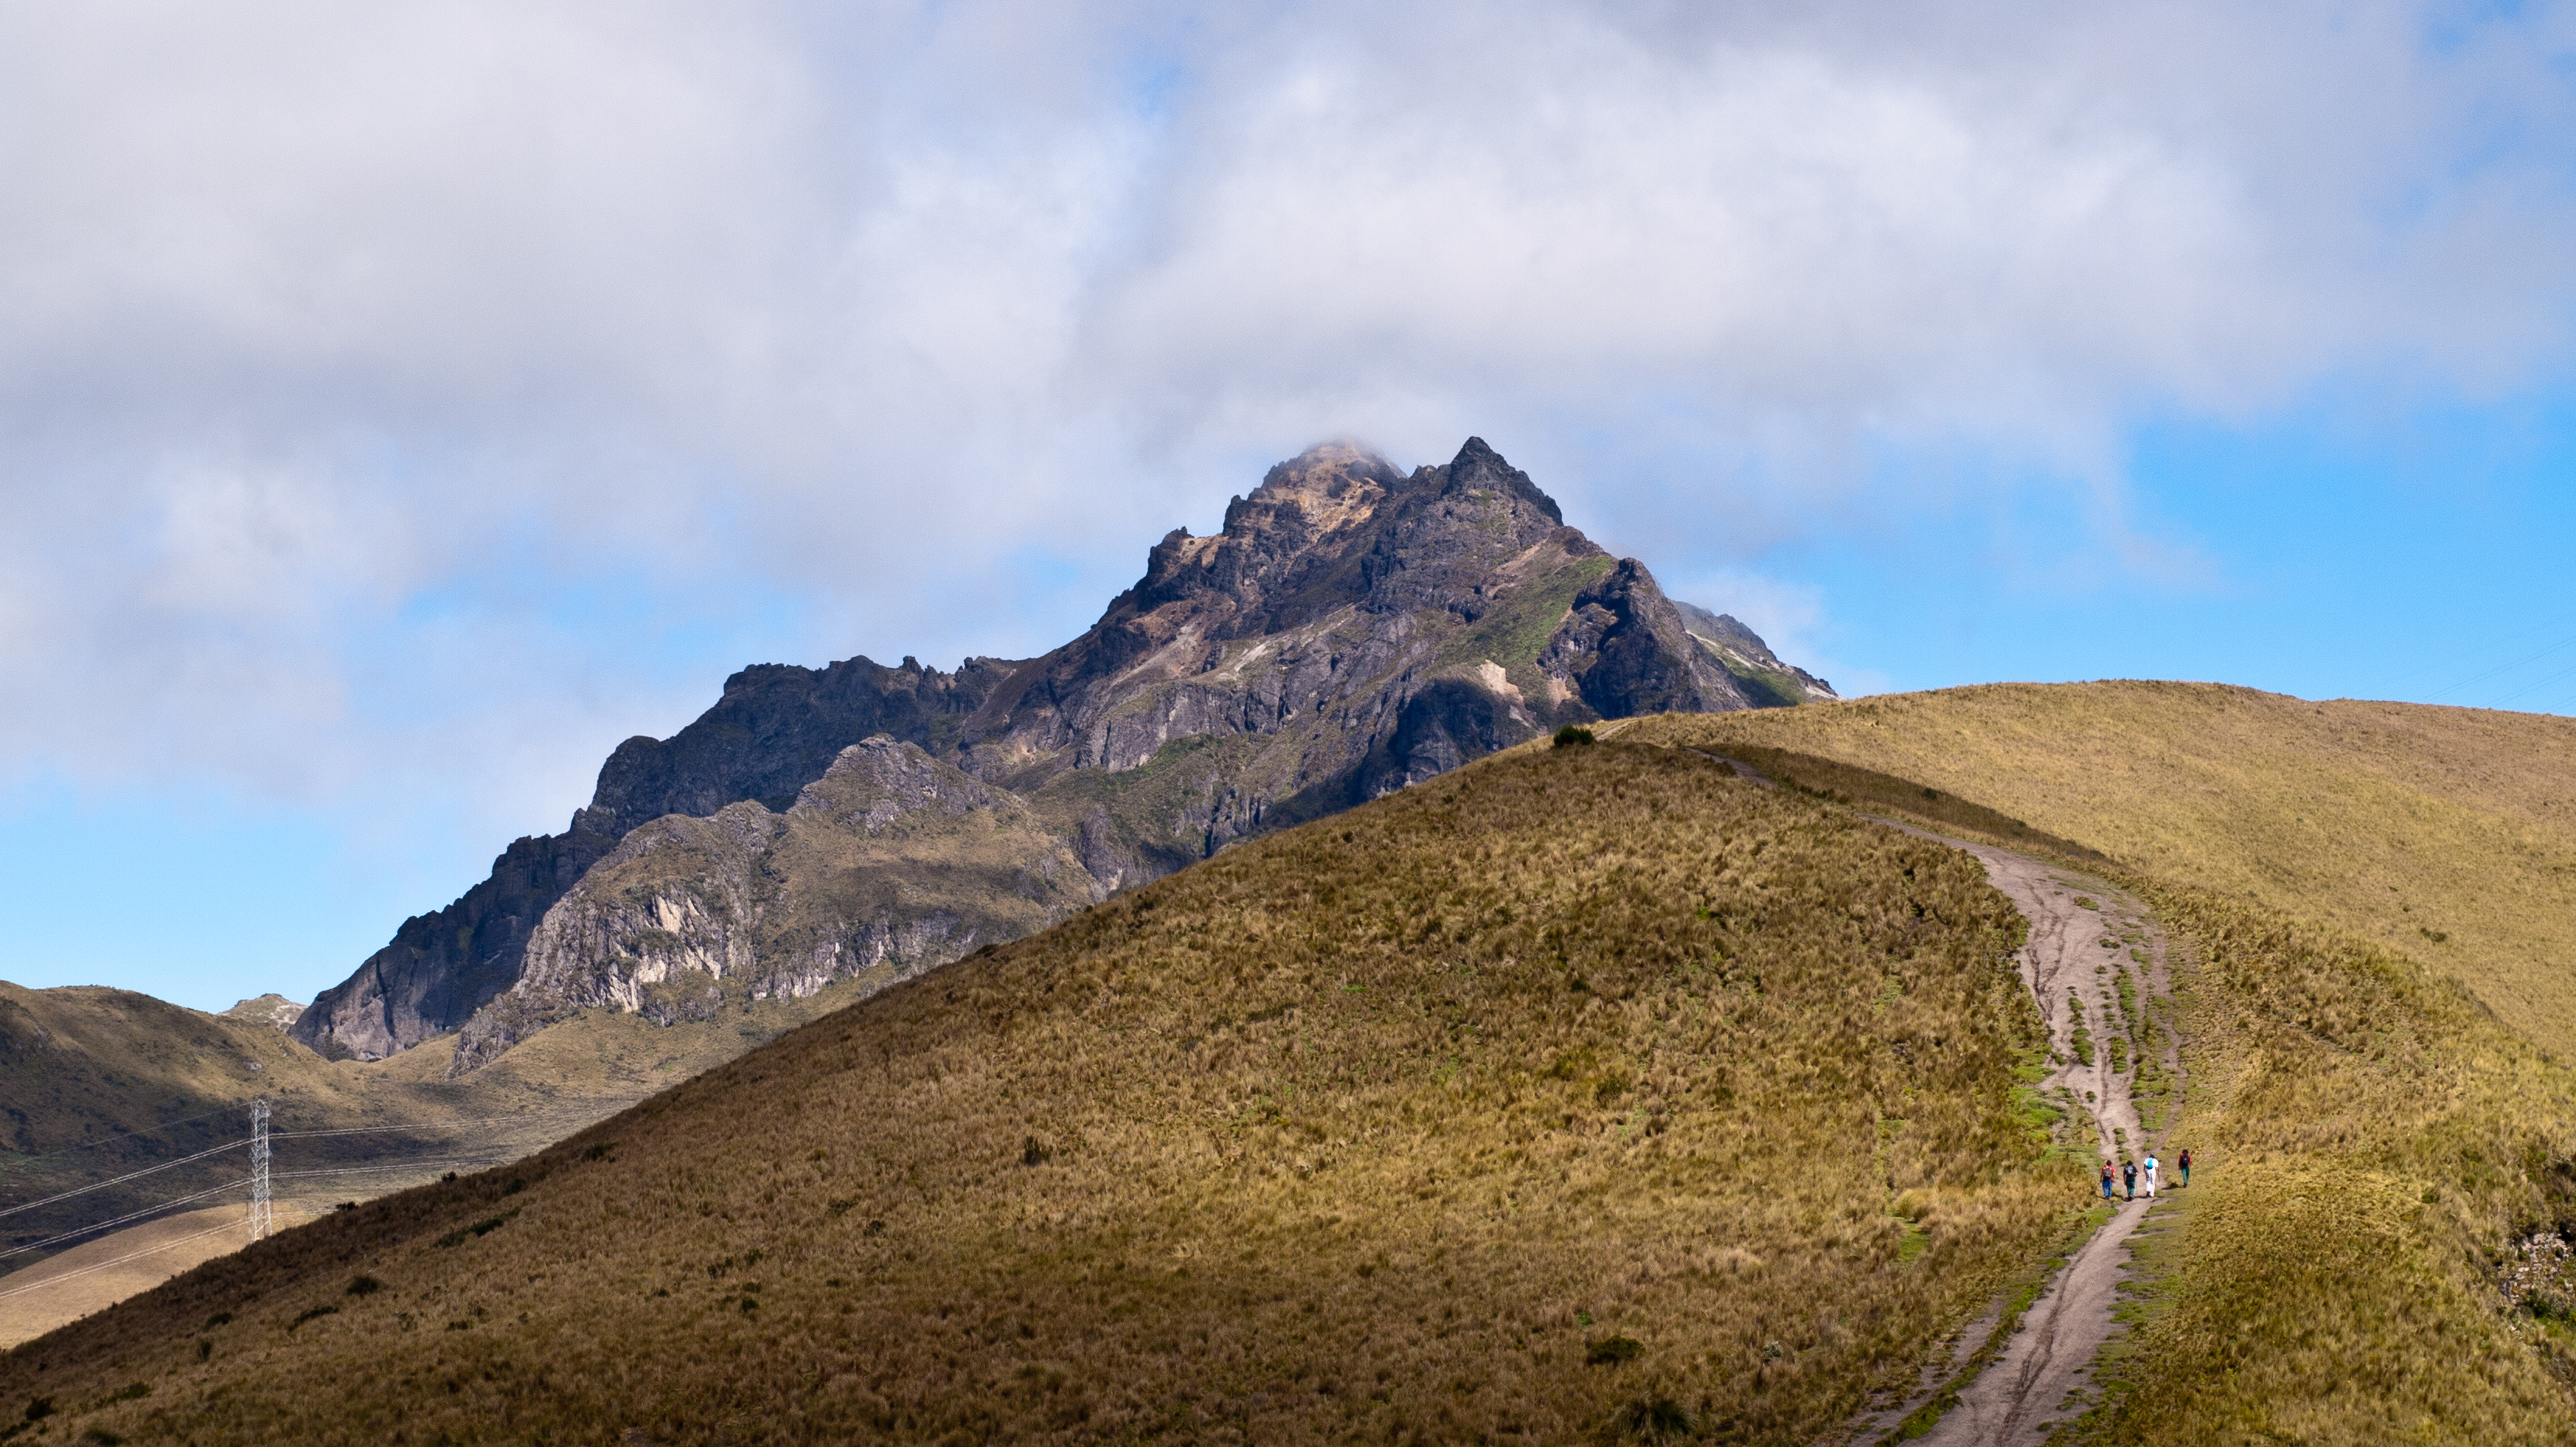 https://upload.wikimedia.org/wikipedia/commons/2/2f/Rucu_Pichincha_and_Trail.jpg